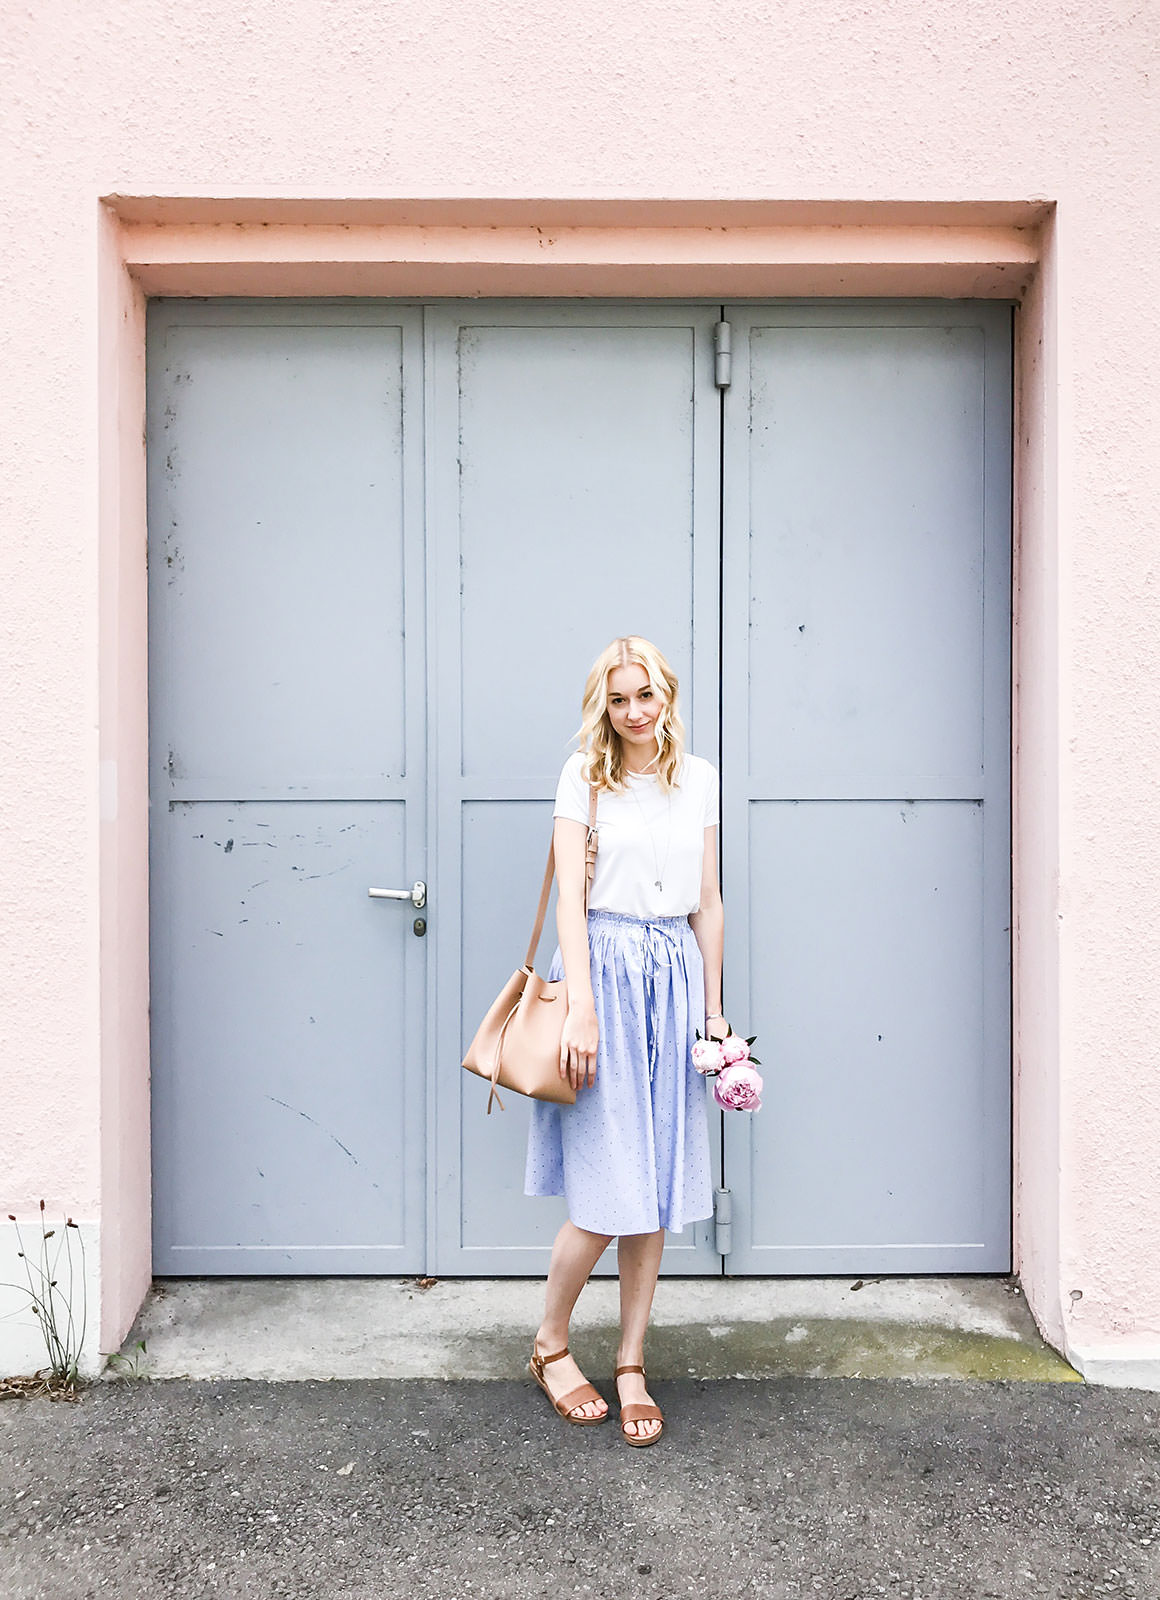 Pastel blue and tan outfit - Tip for trying a new look